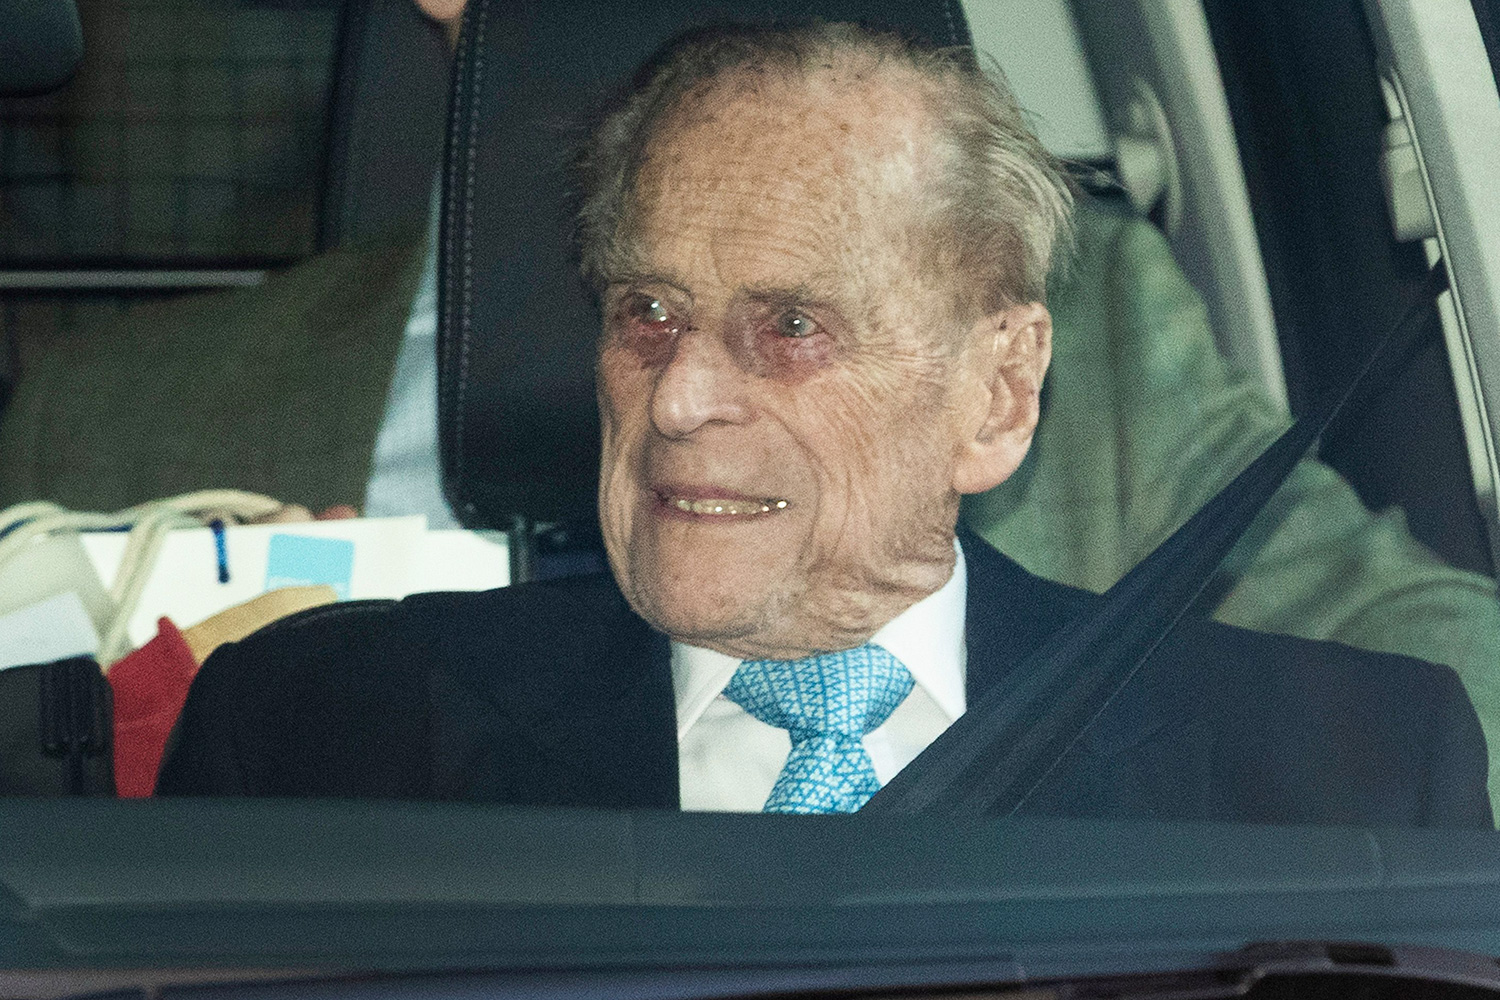 Prince Philip seen leaving King Edward VII hospital in London following a short stay. Prince Philip leaving King Edward VII hospital, London, UK - 24 Dec 2019